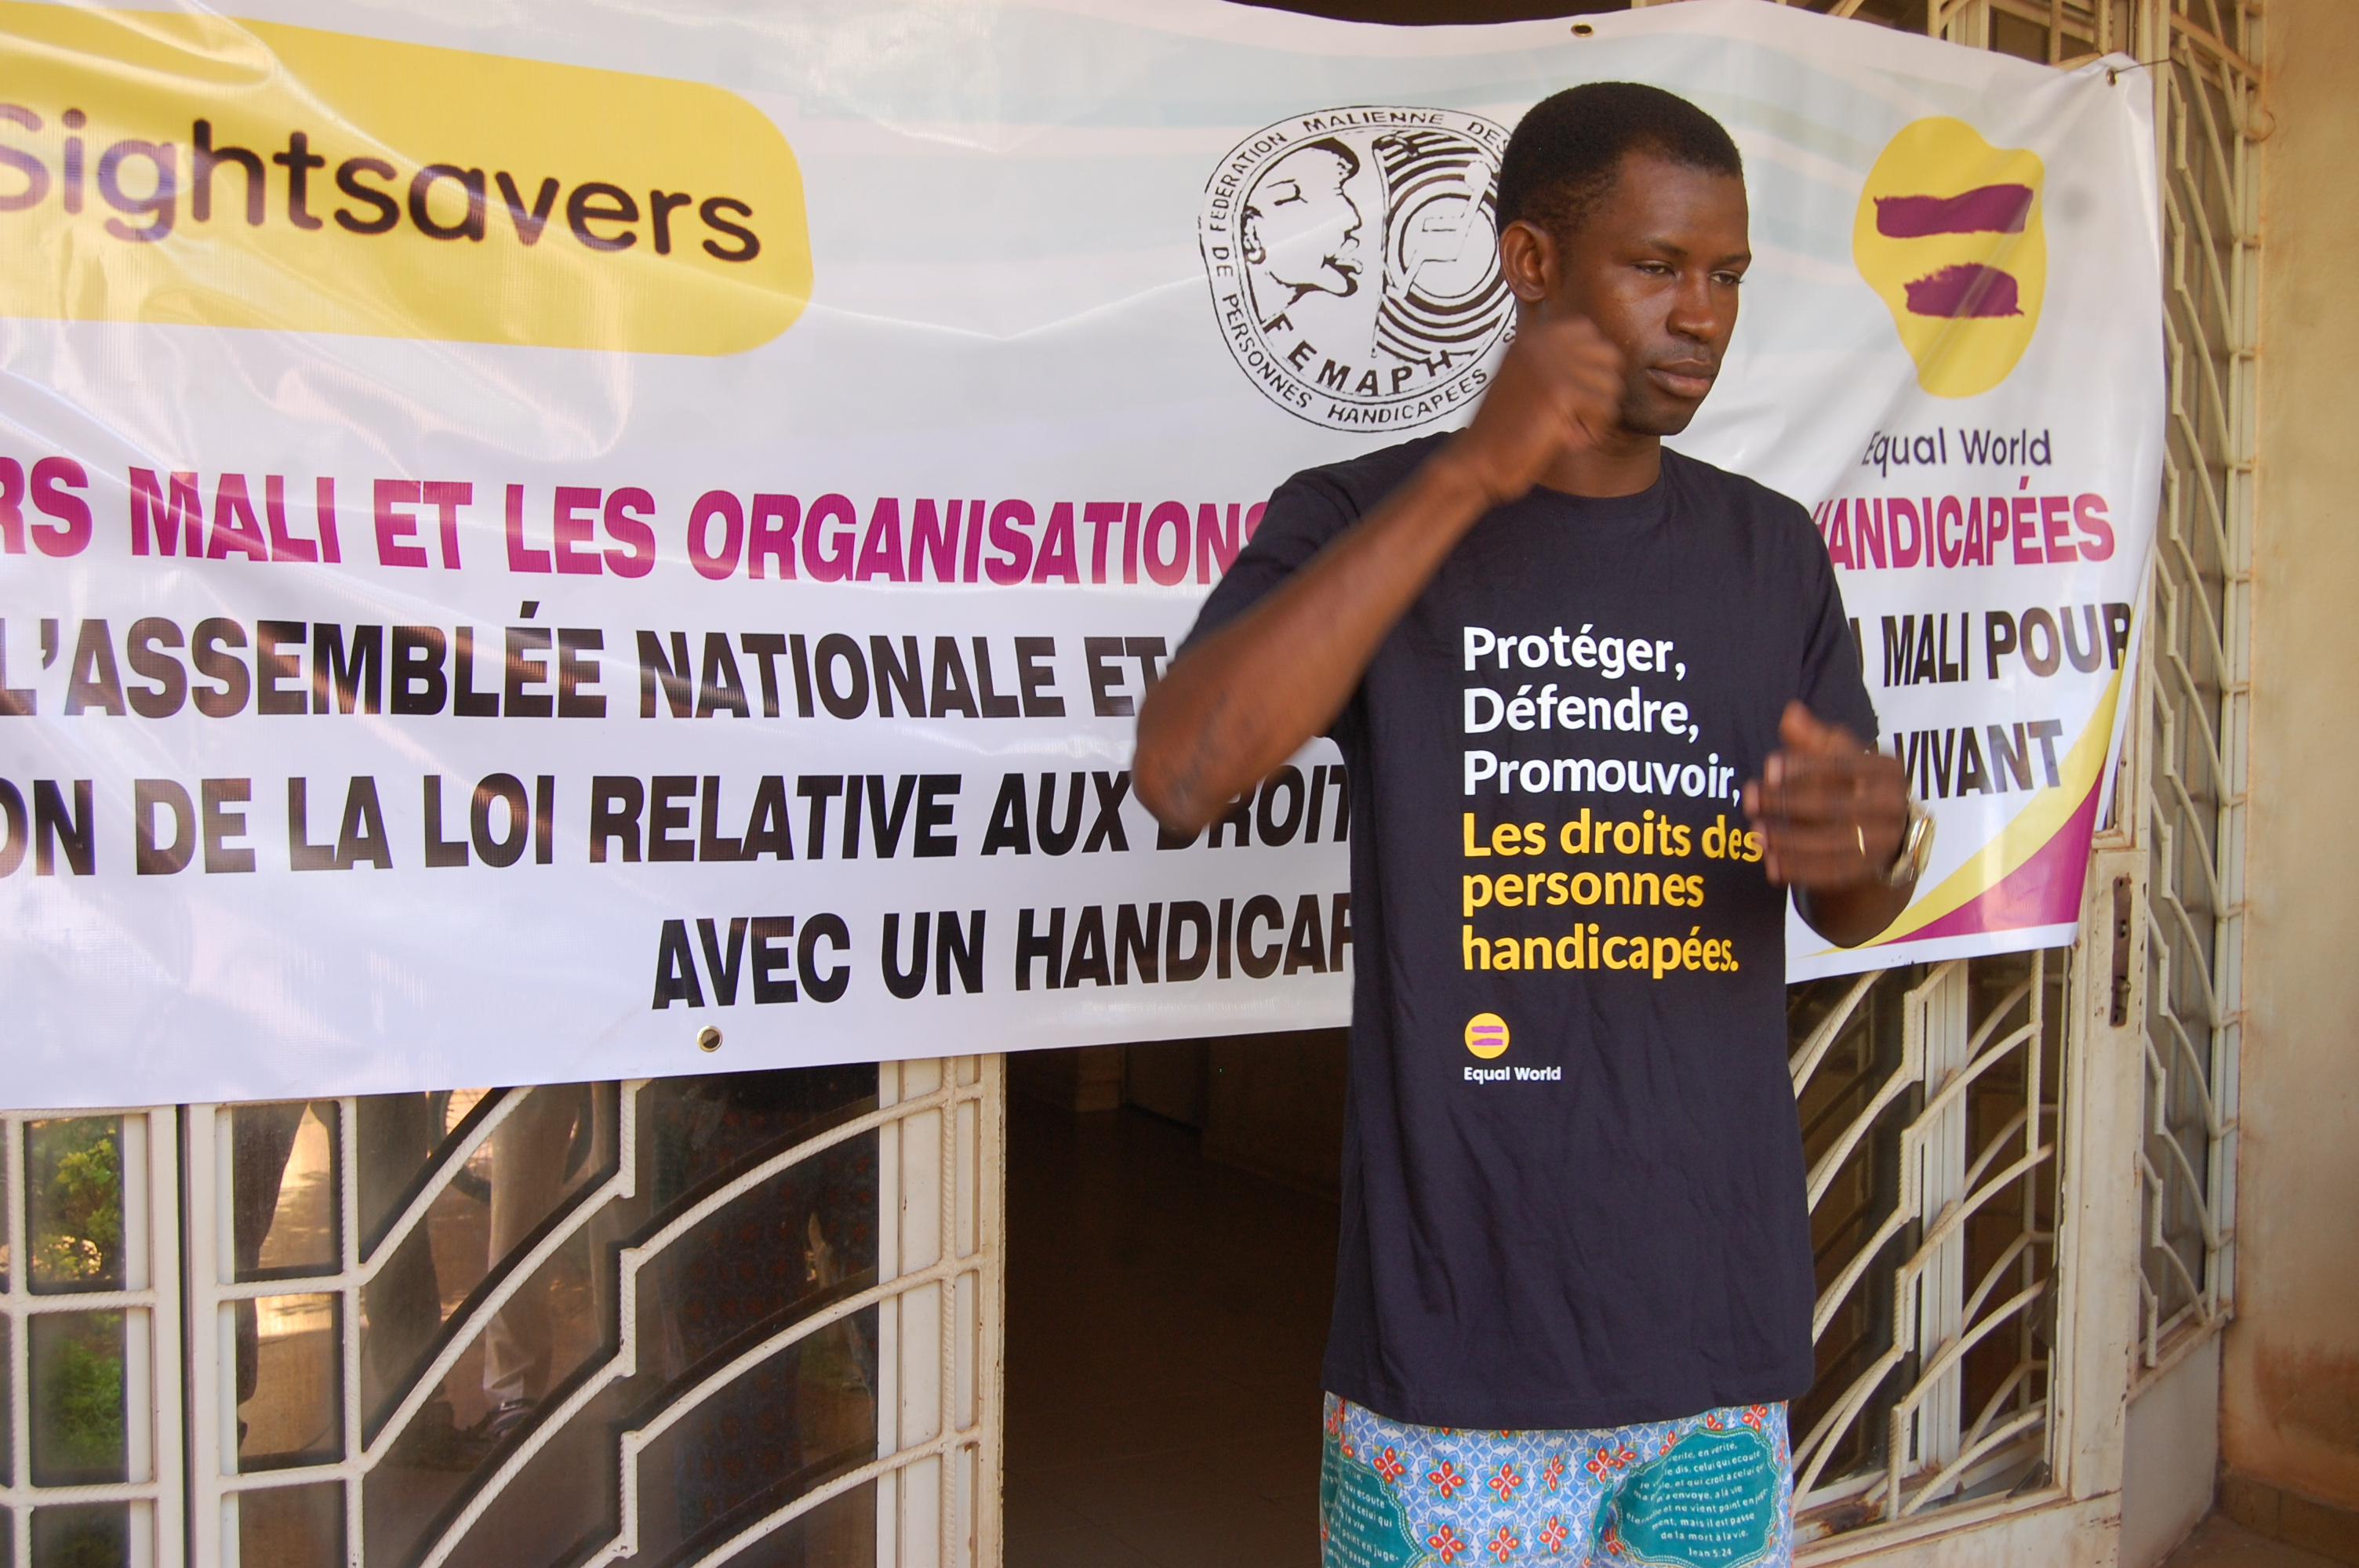 A man using sign language, standing in front of a disability rights banner for the Equal World campaign.